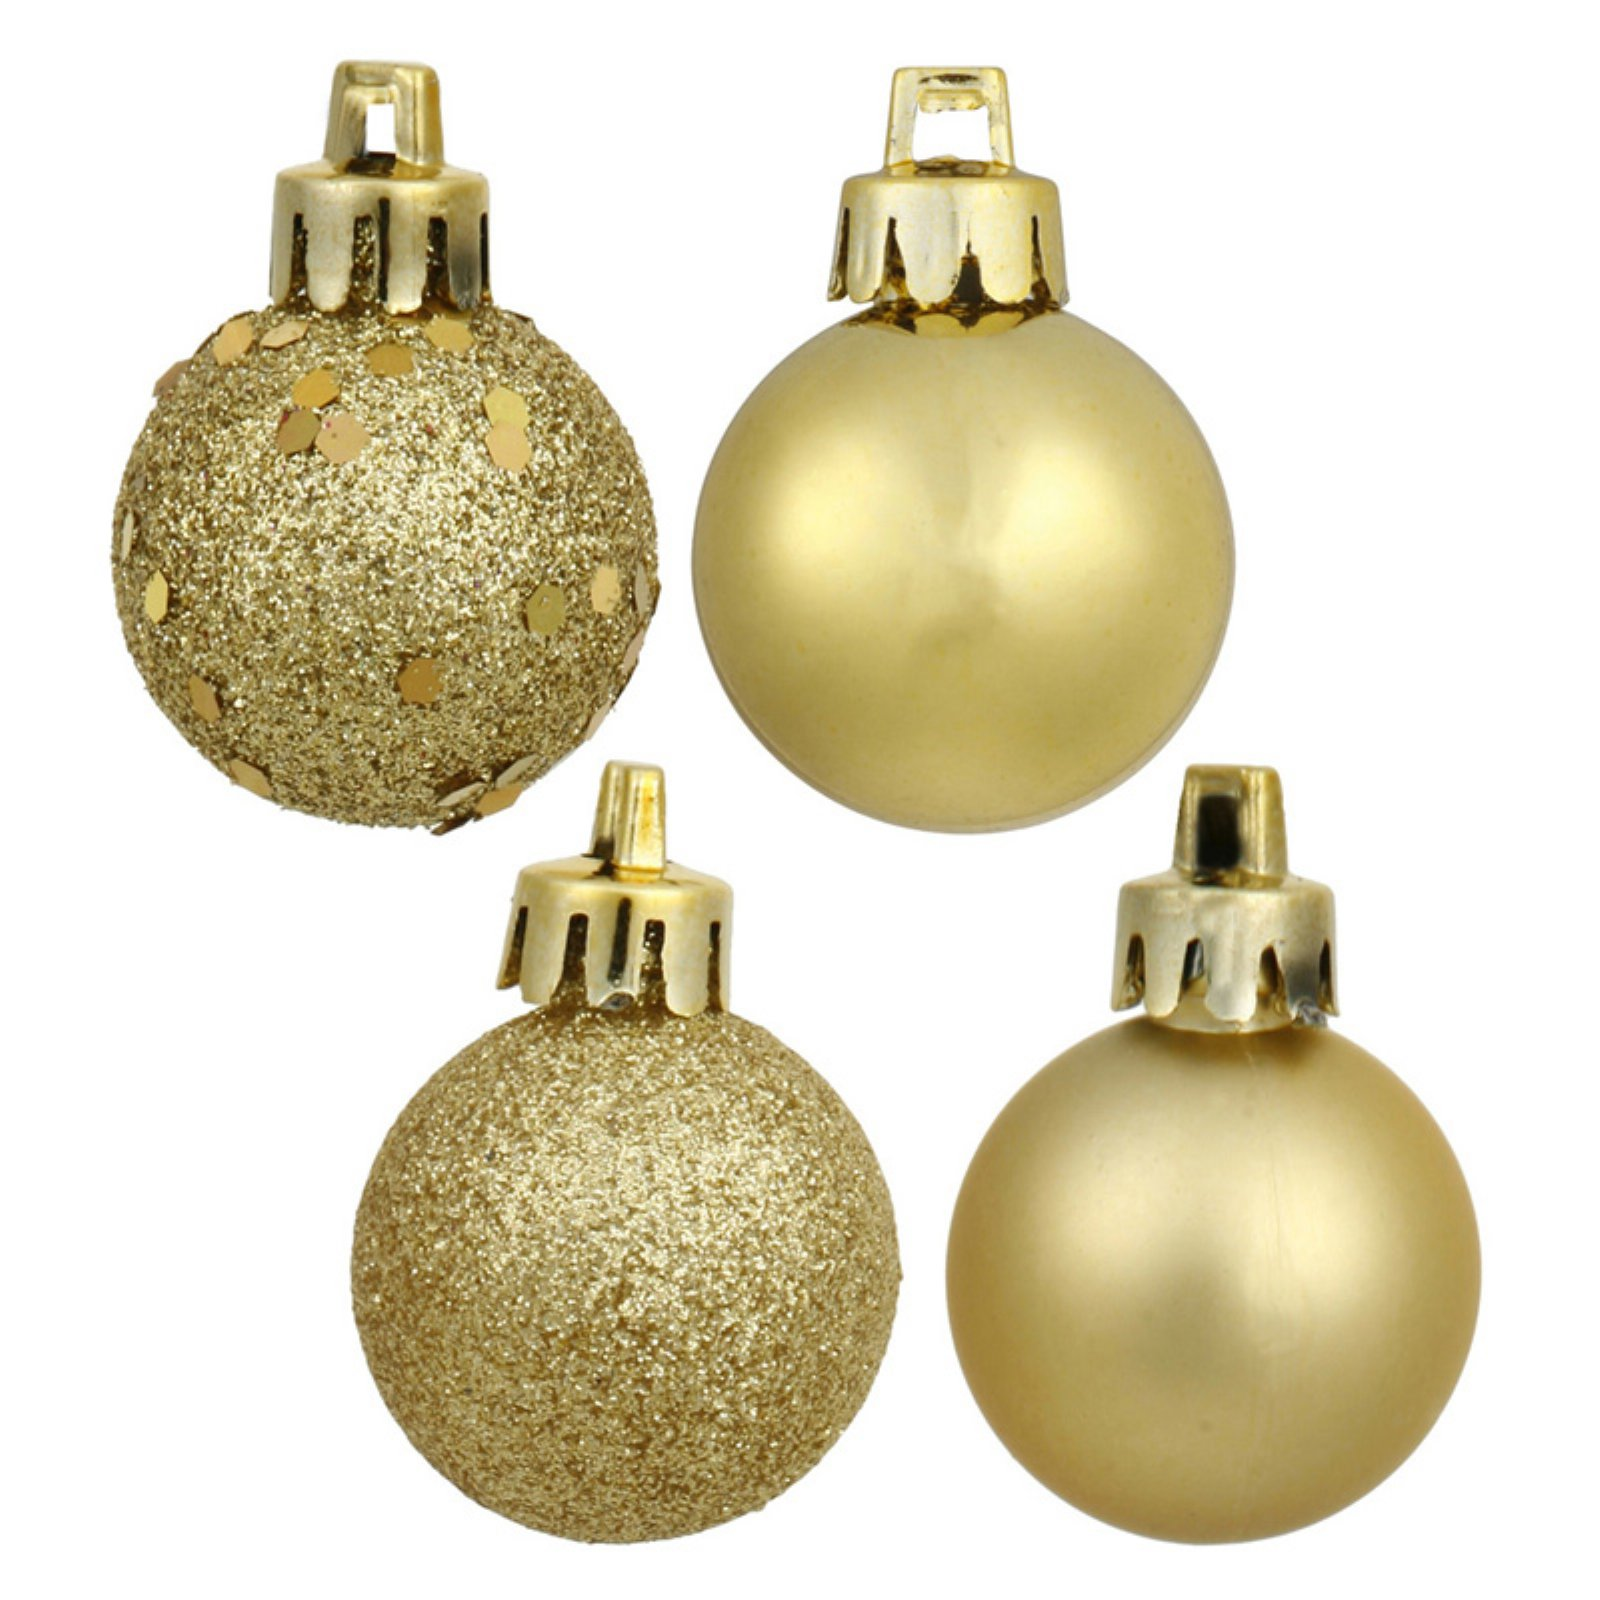 Vickerman 3 in. Gold 4 Finish Ornament Assorted - Set of 16